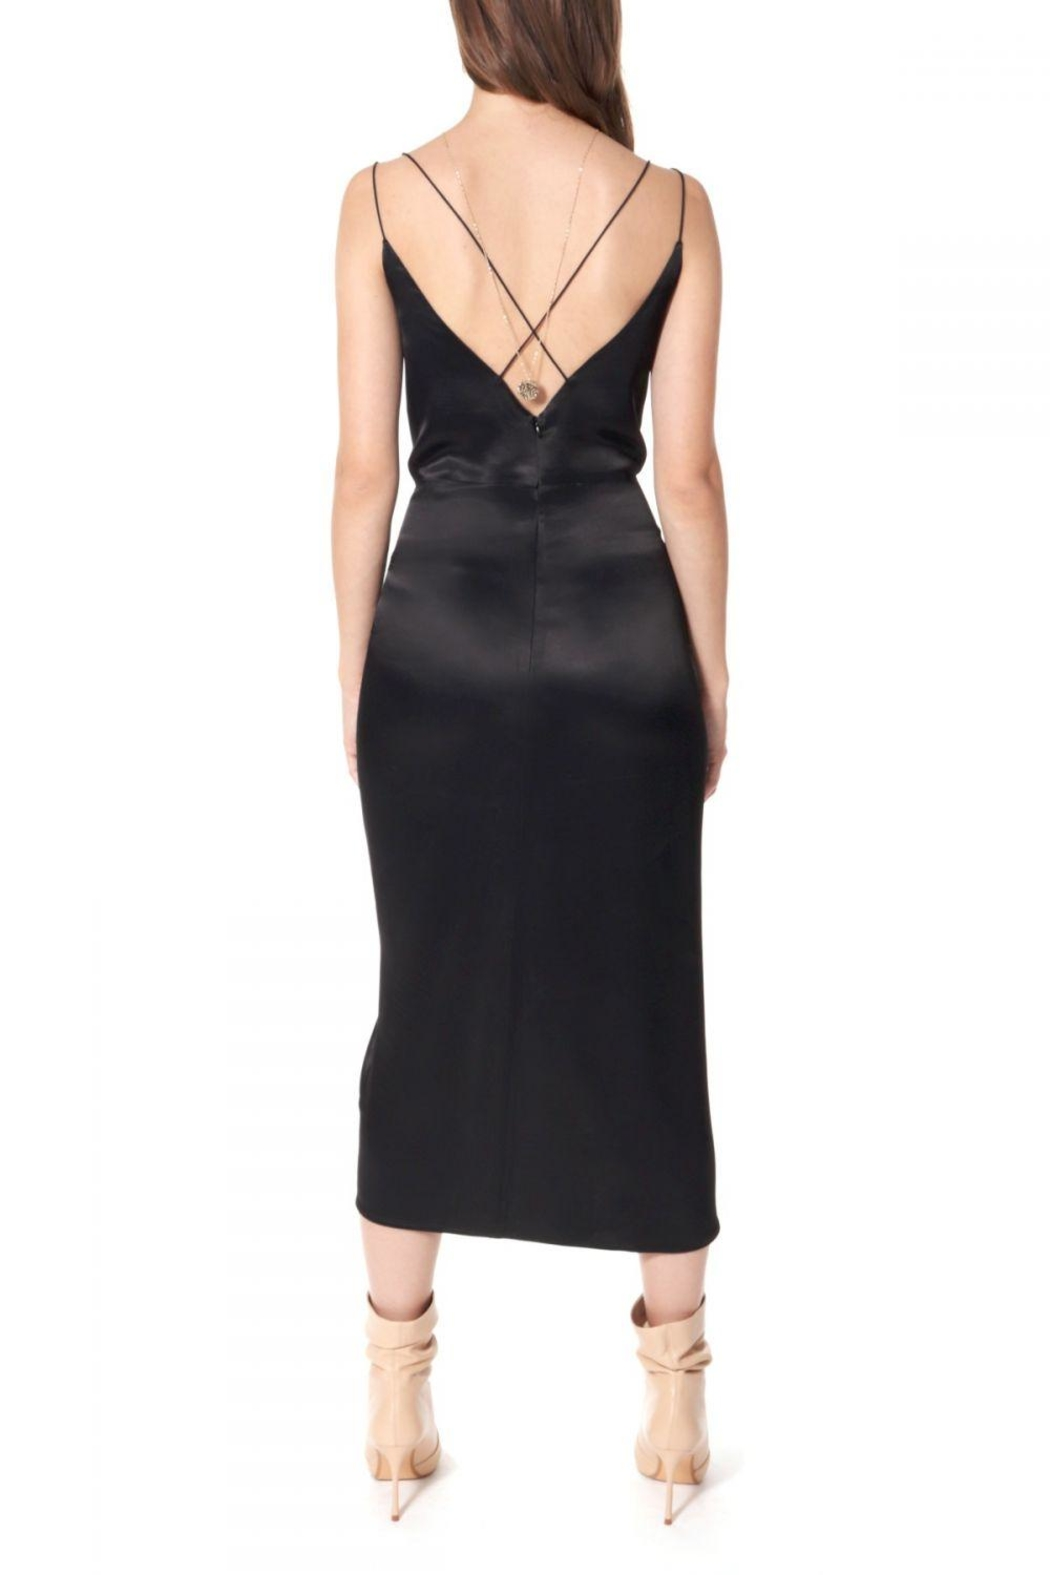 AGGI Dress Ava Glossy Black - Back Cropped Image